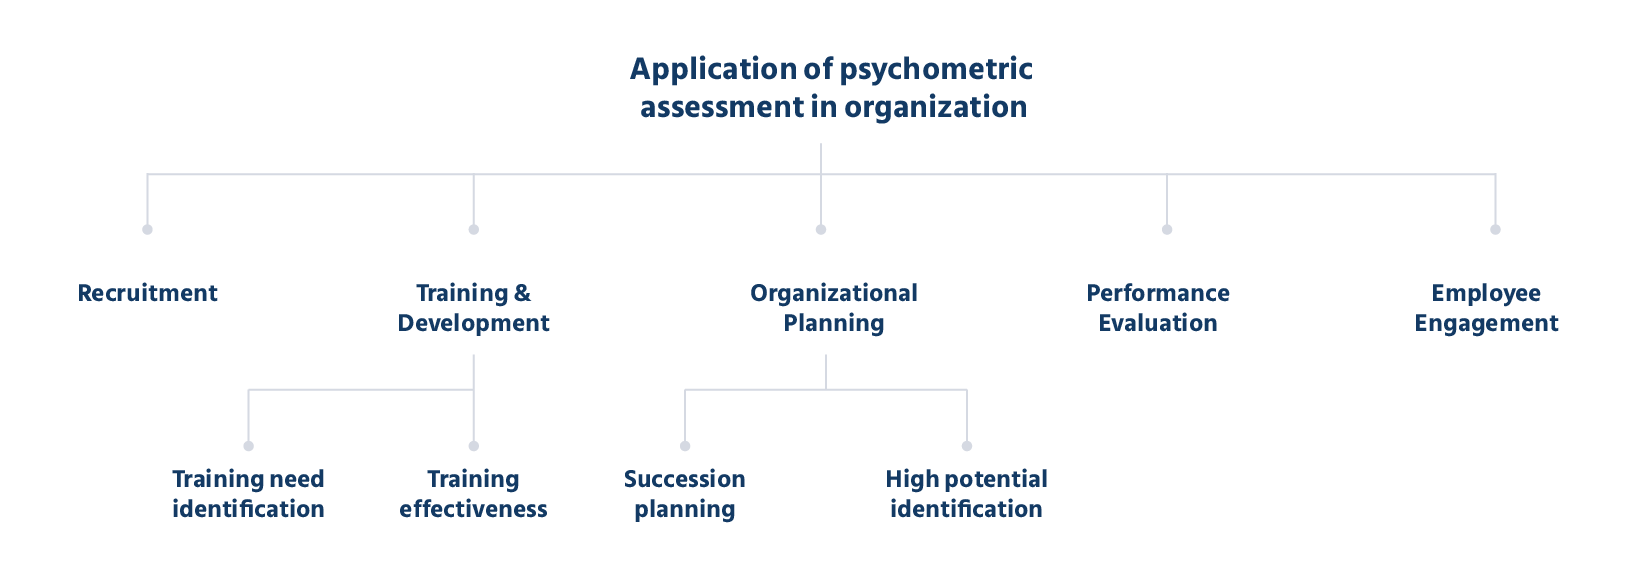 Psychometric Tests Applications in an Organizations